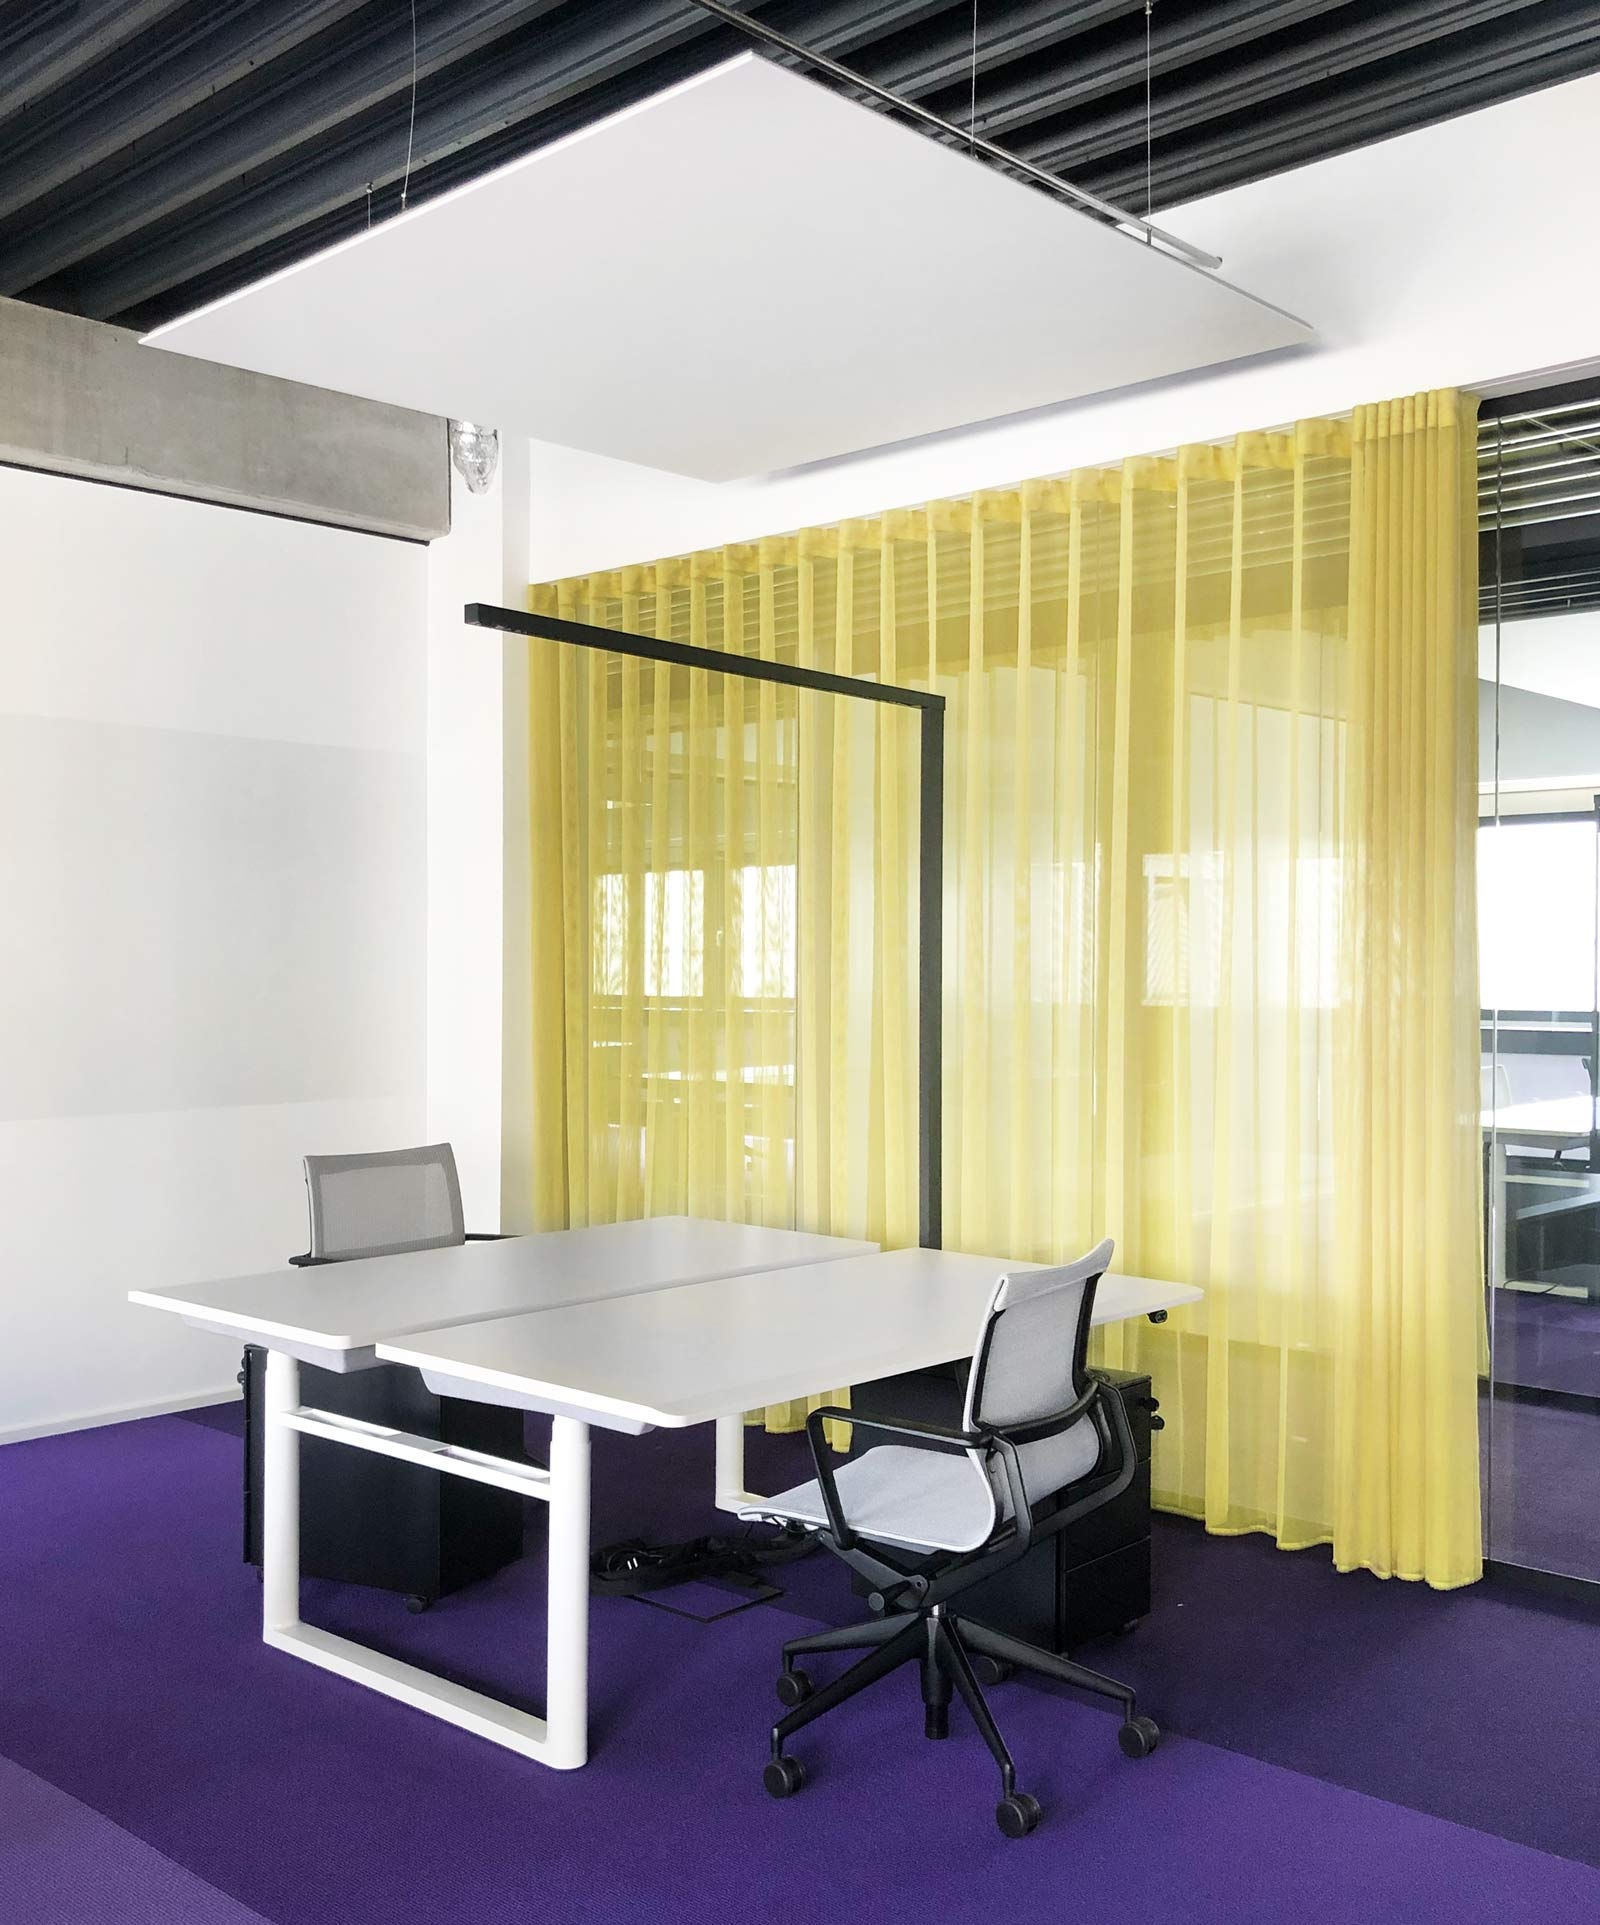 Komplementerfarbe, Office Design, Brand Space, Vitra, Kvadrat, Punct Object